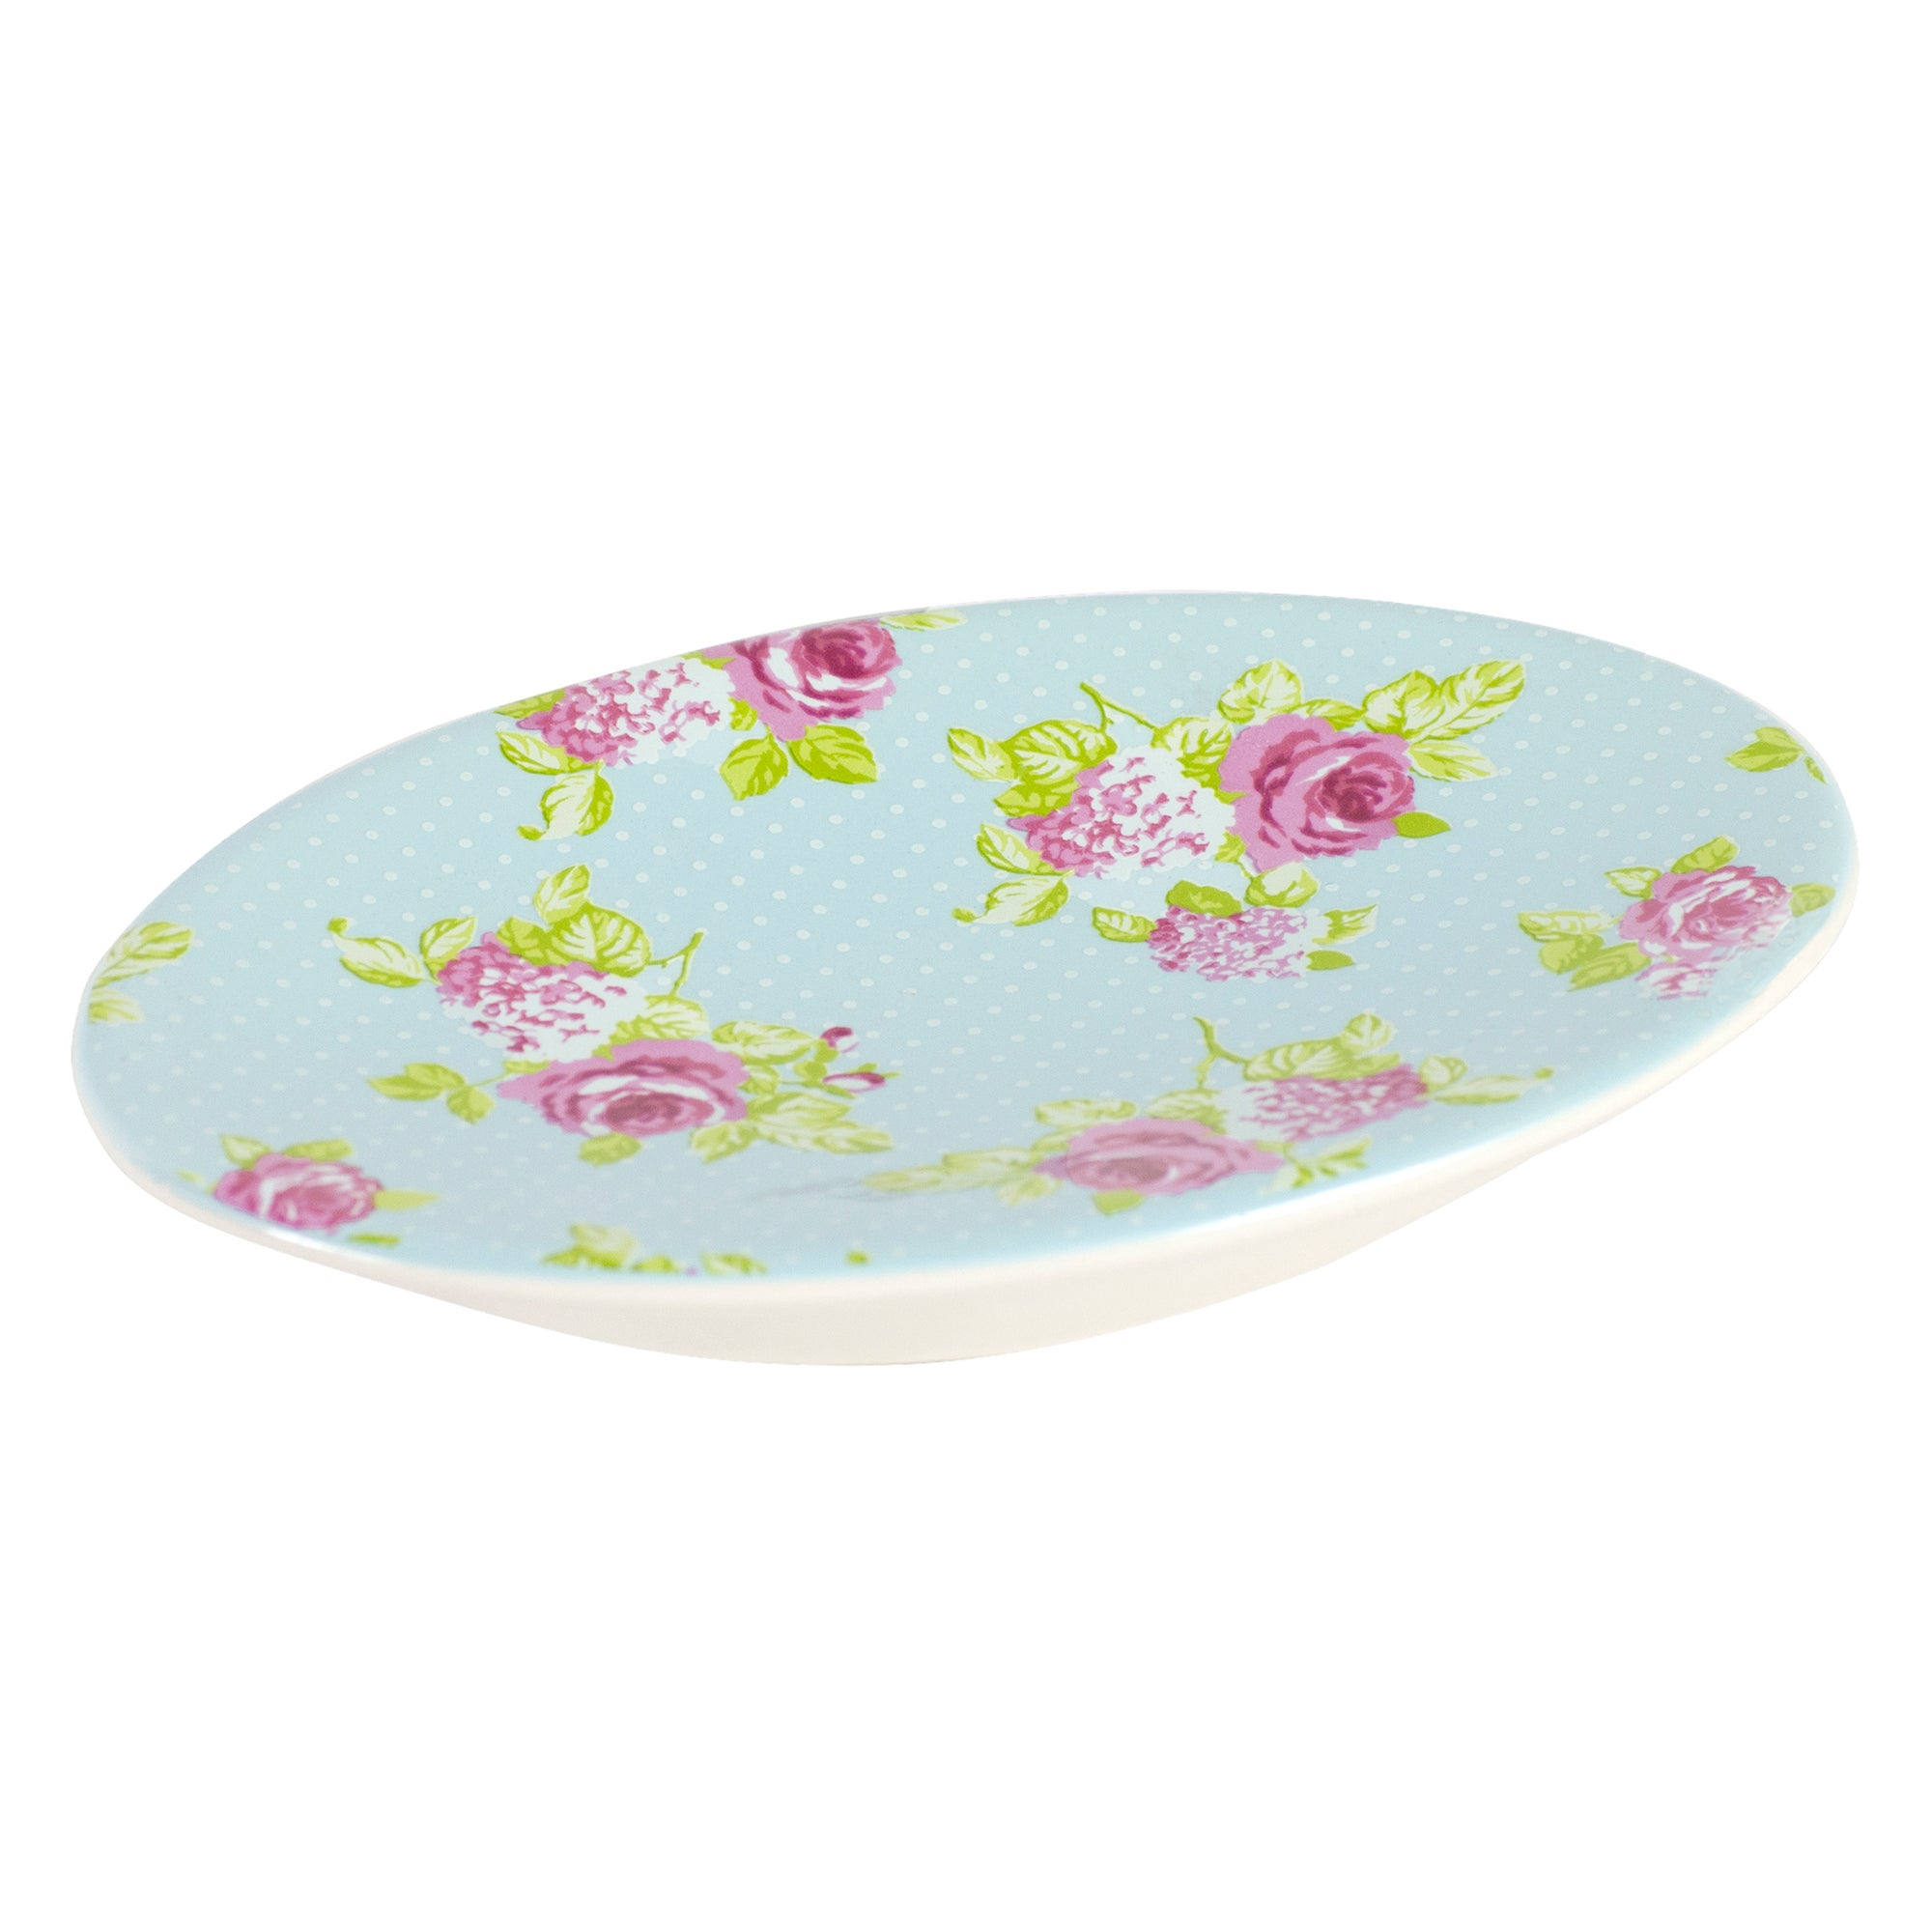 Rose and Ellis Clarendon Collection Soap Dish